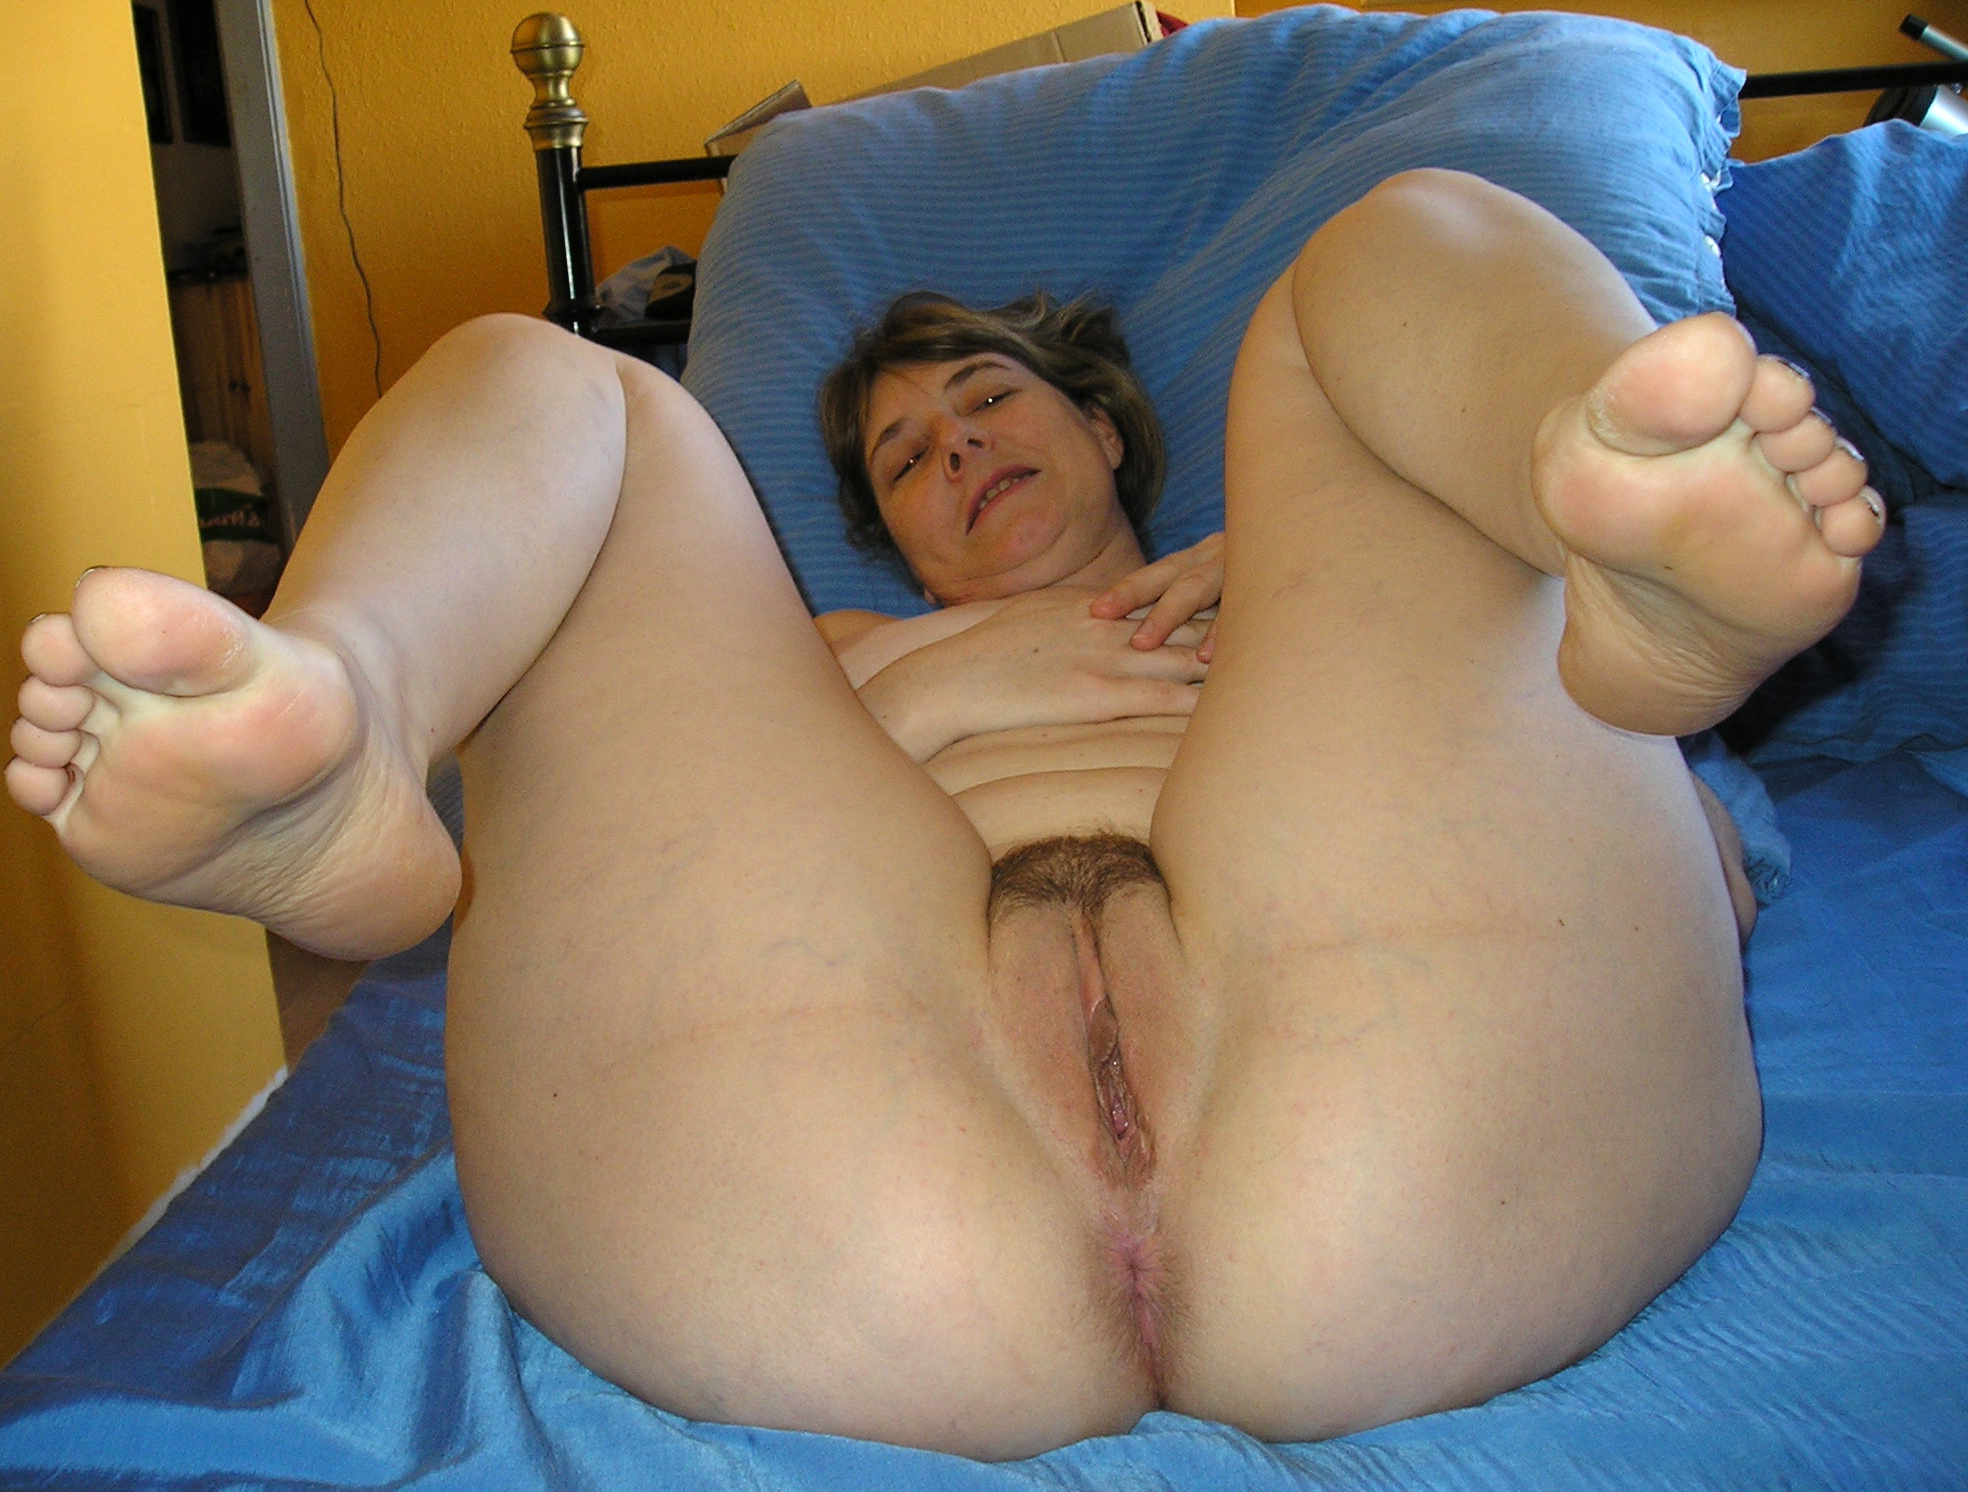 Exaggerate. apologise, but, latina tranny in thongs simply excellent